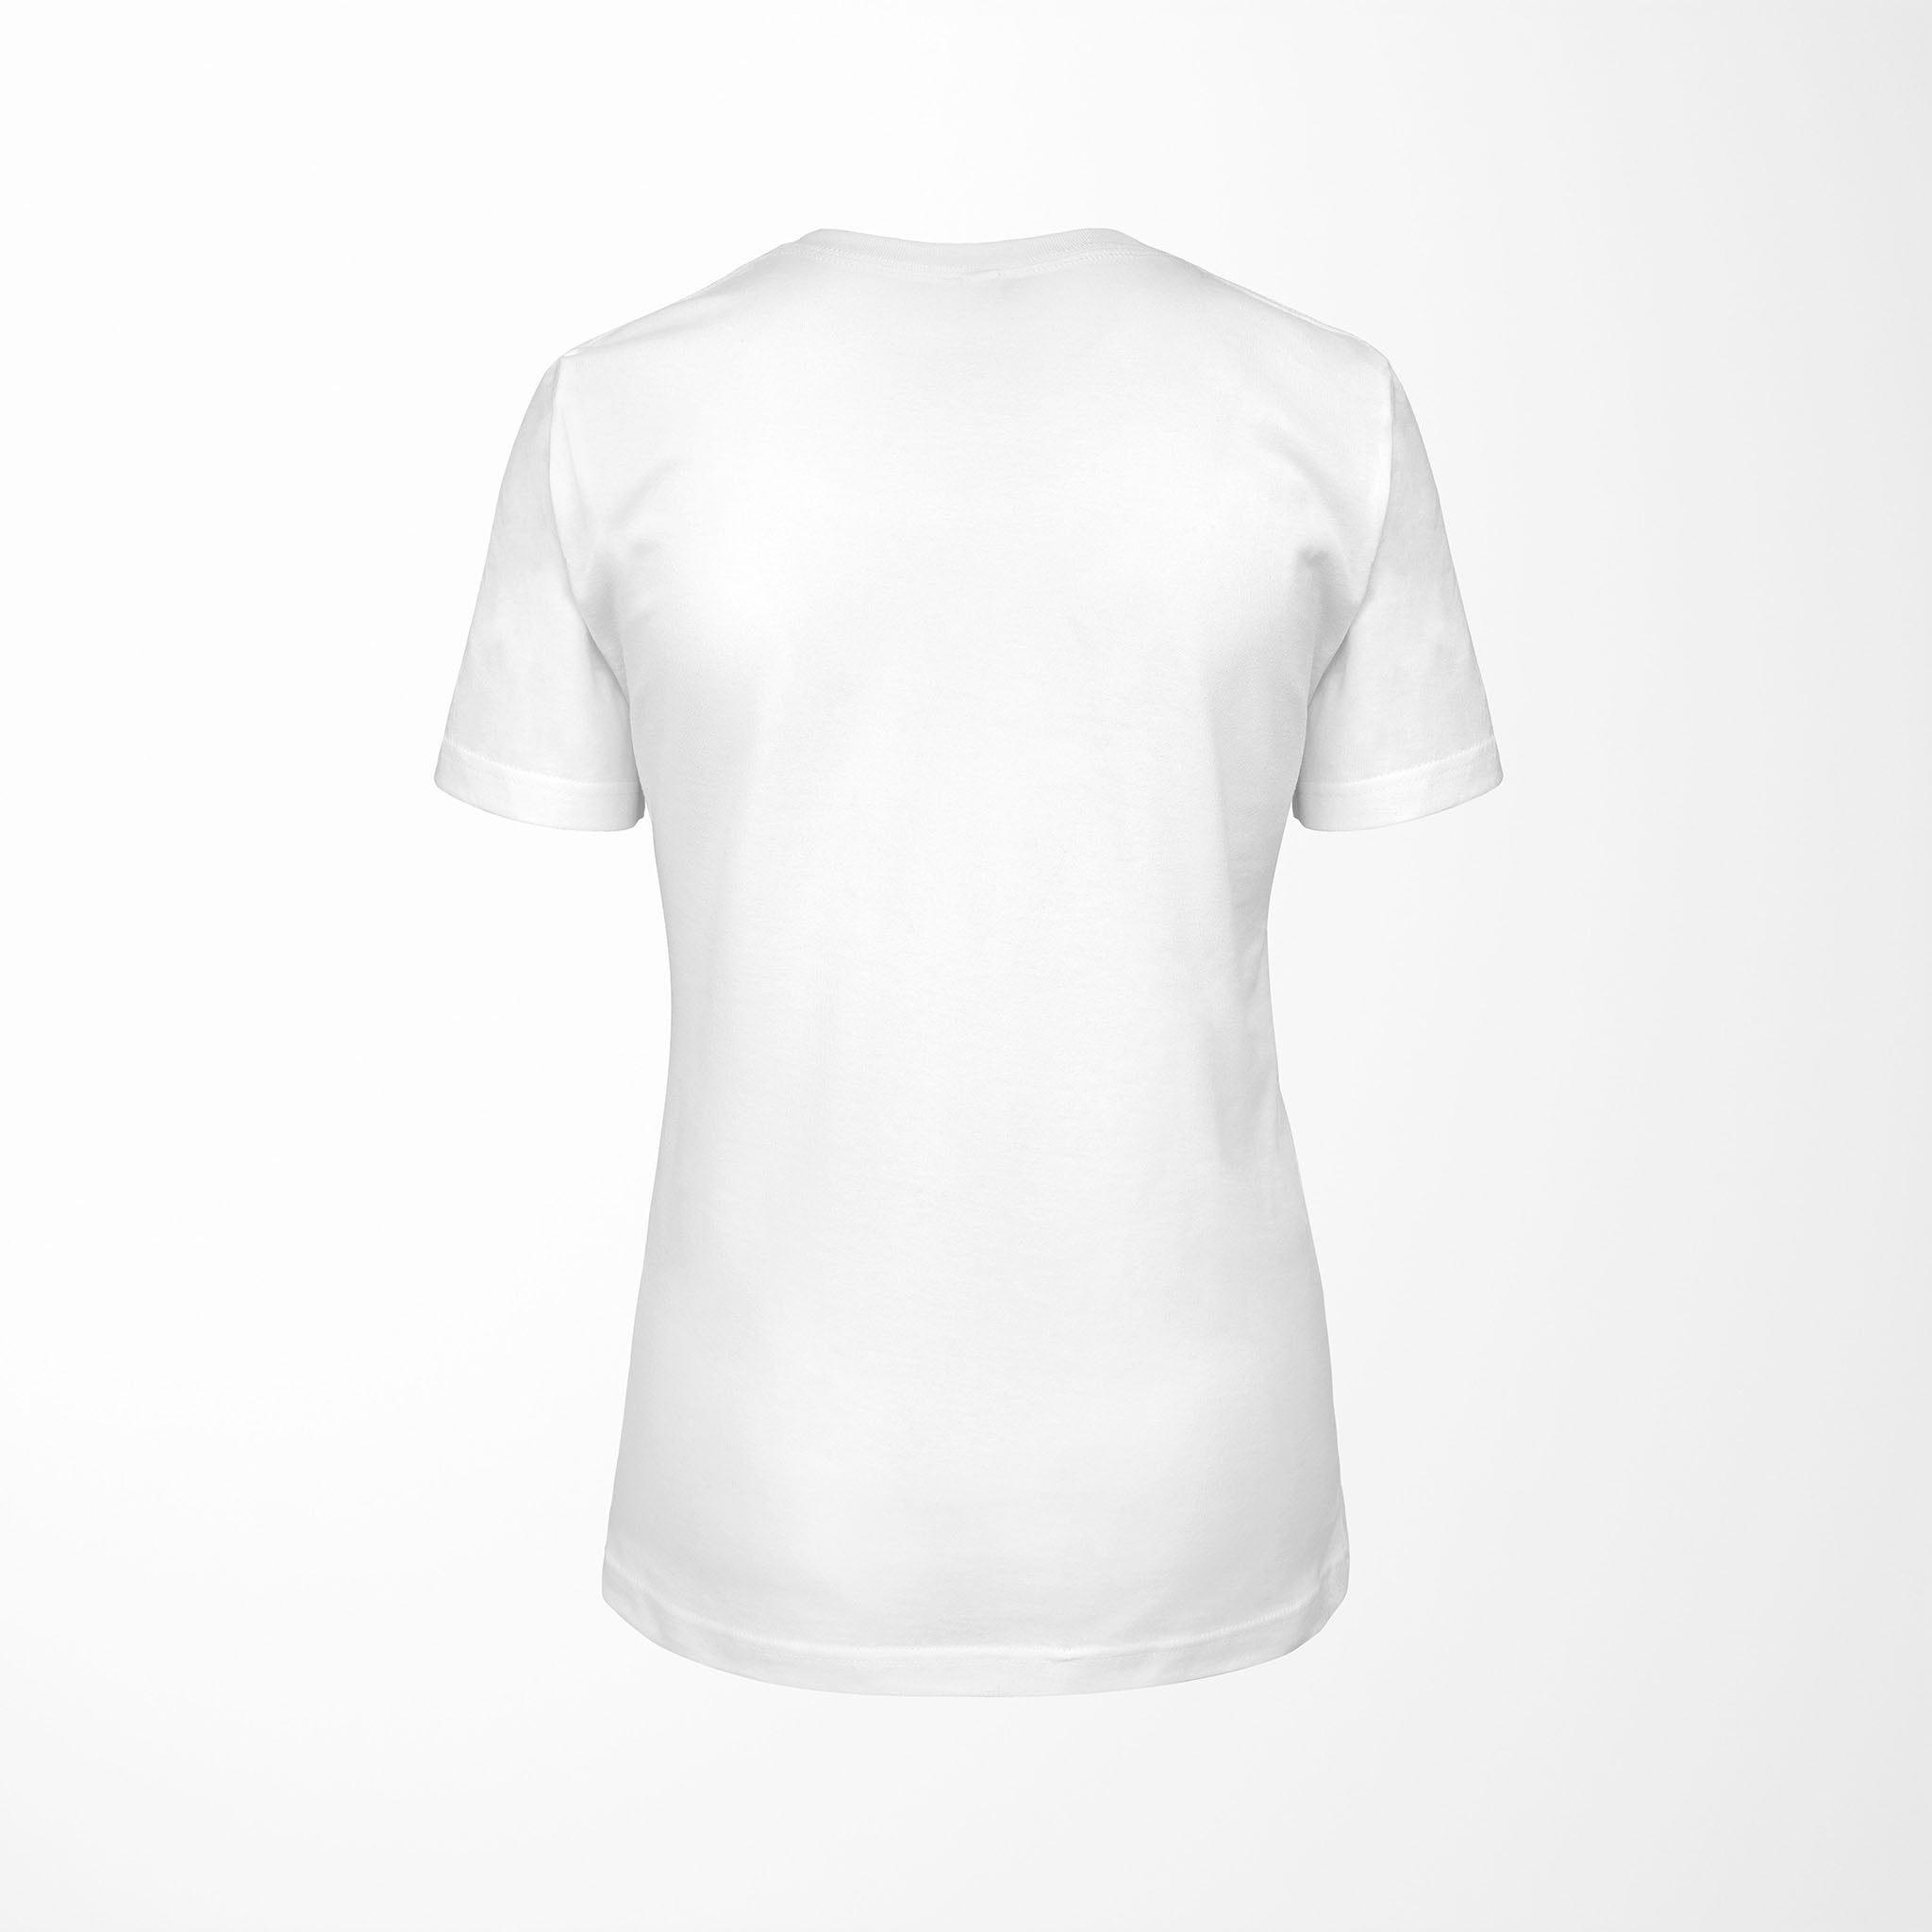 STRIKE Relaxed Fit Women's 100% Cotton White T-Shirt back